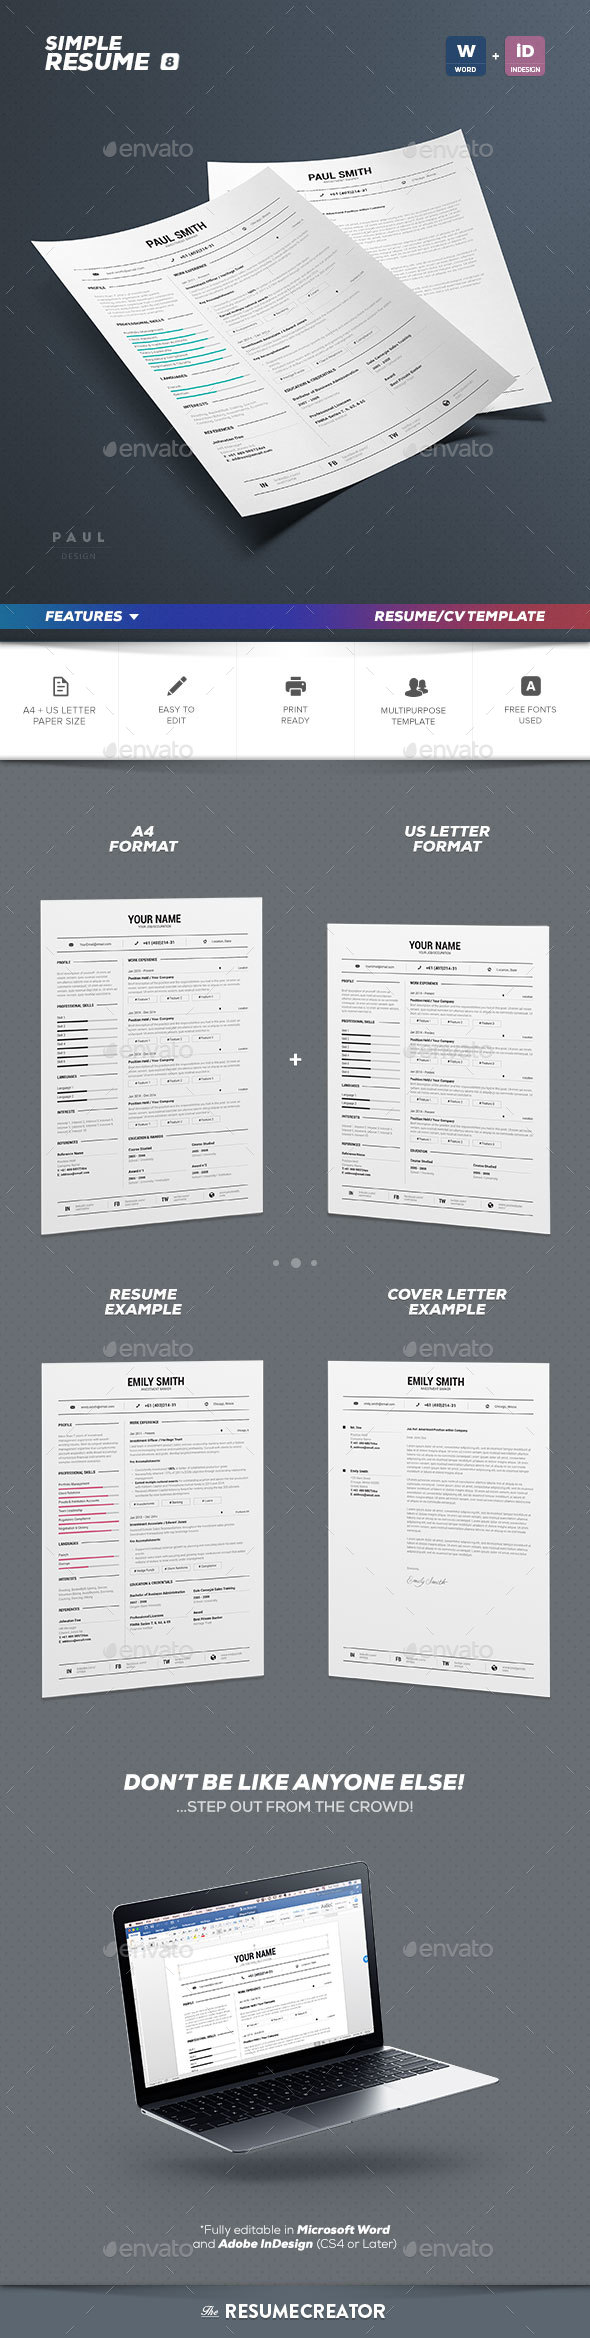 simple resume  cv volume 8 by paolo6180